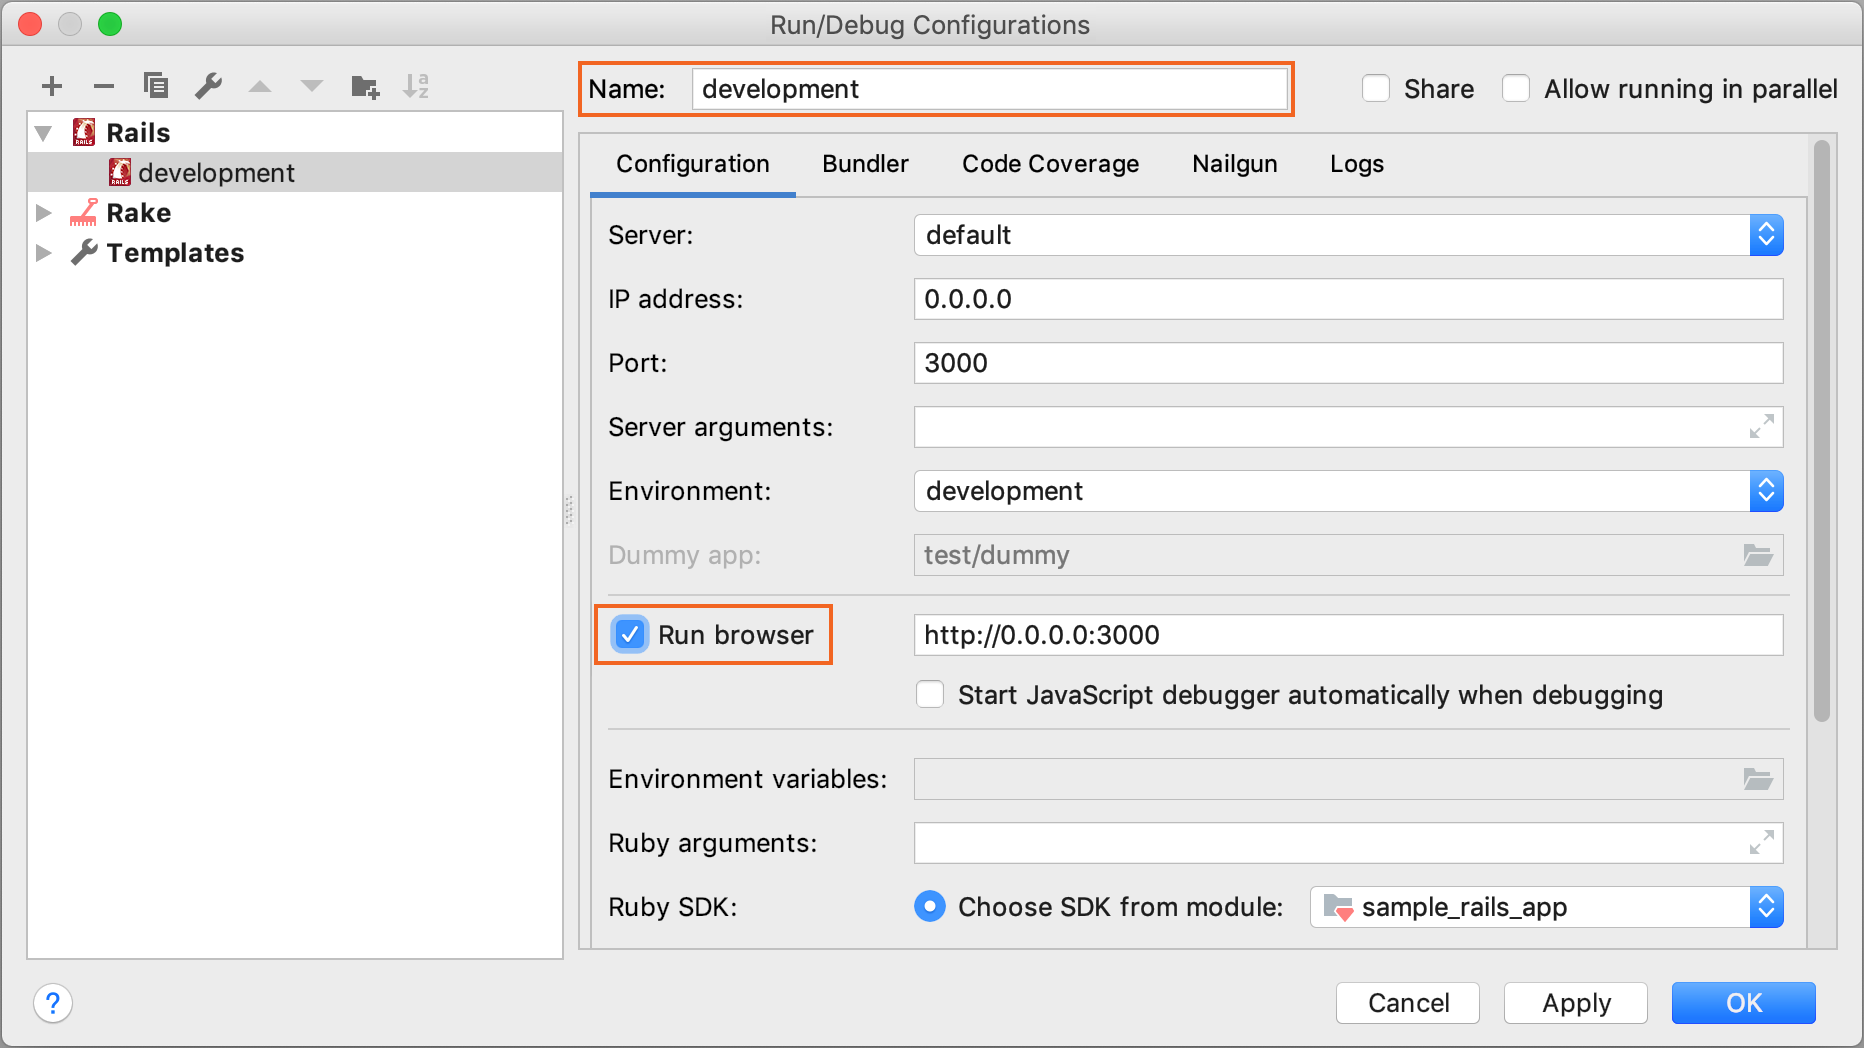 Run/Debug Configurations dialog